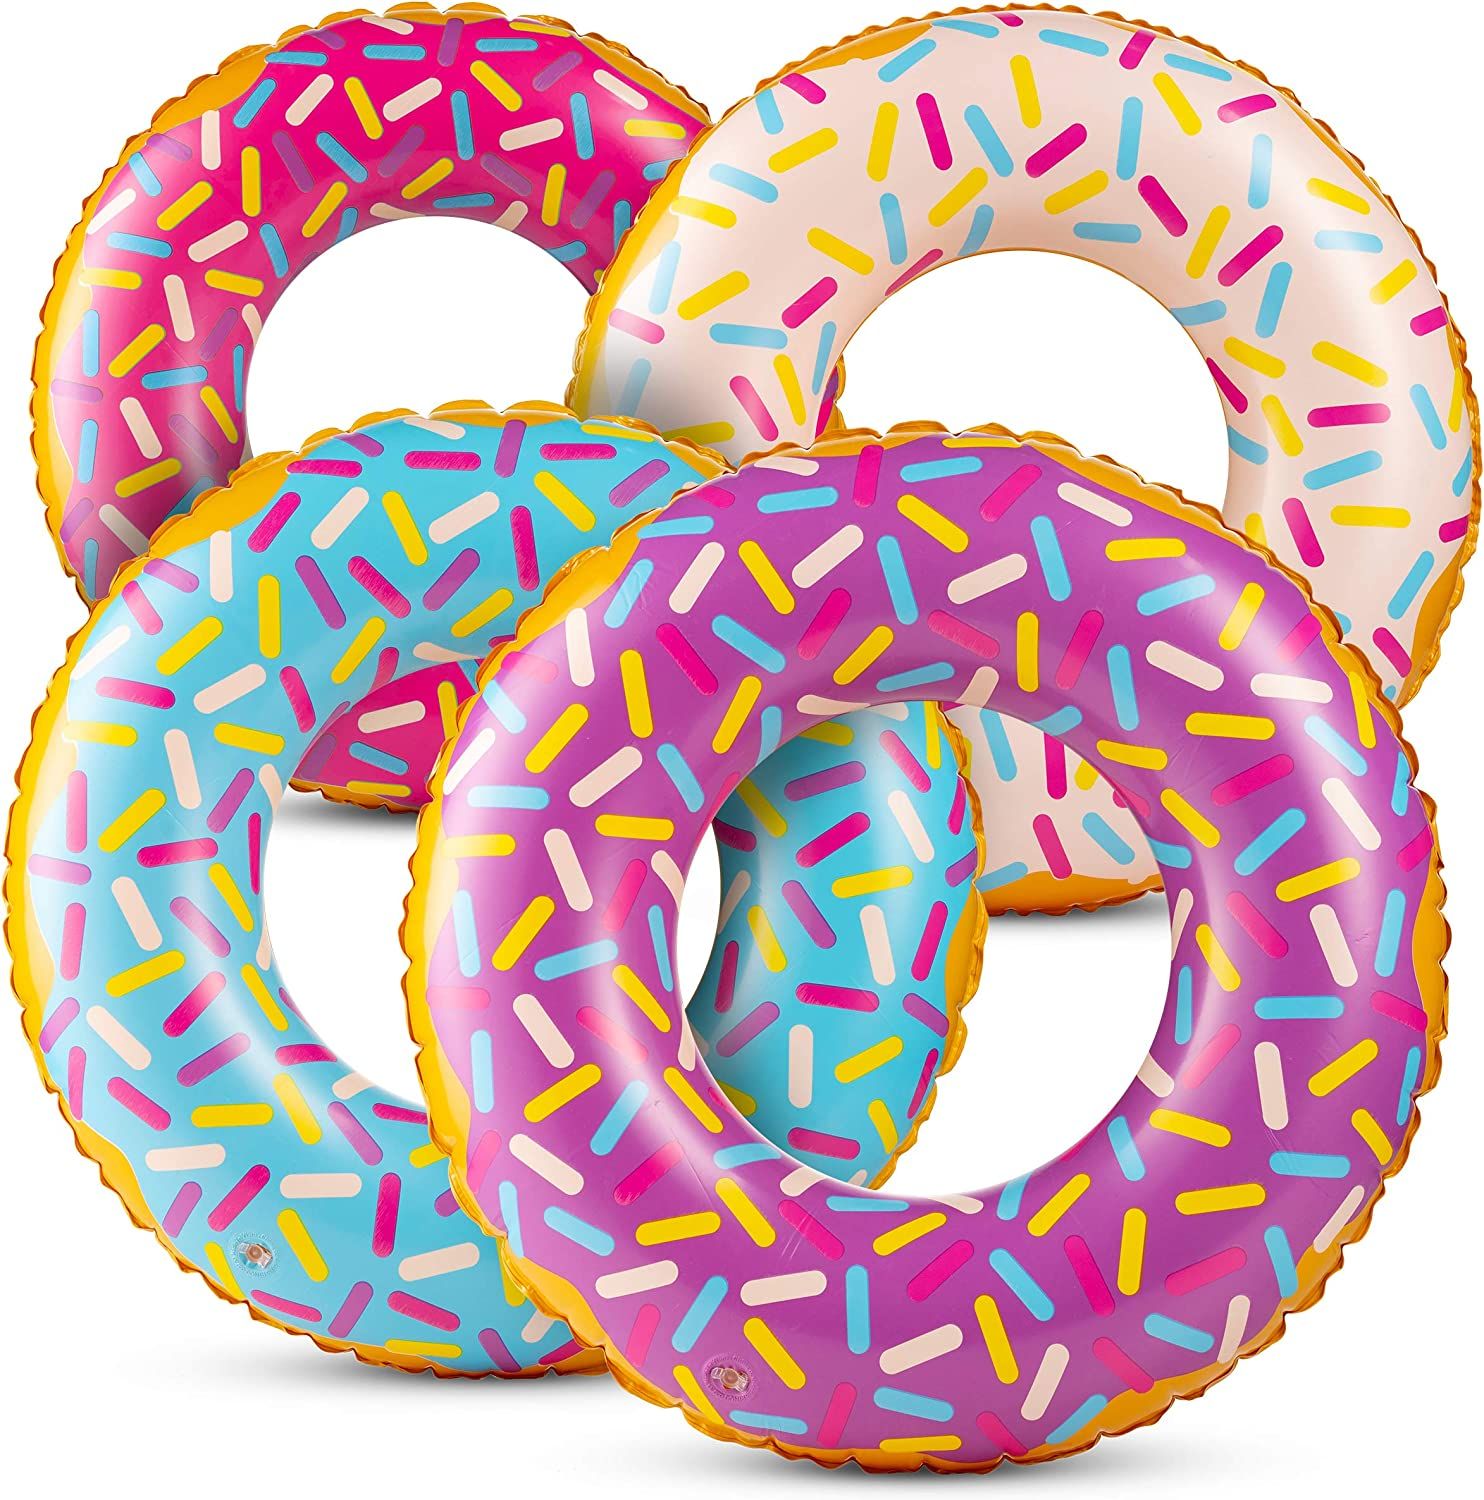 Inflatable Donuts (Pack of 4) 24 Inch Sprinkle Donut Inflatables, in Assorted Neon Colors, for Summer, Pool ,Beach Party Decorations, Floating Ring for Younger Kids and Toddlers